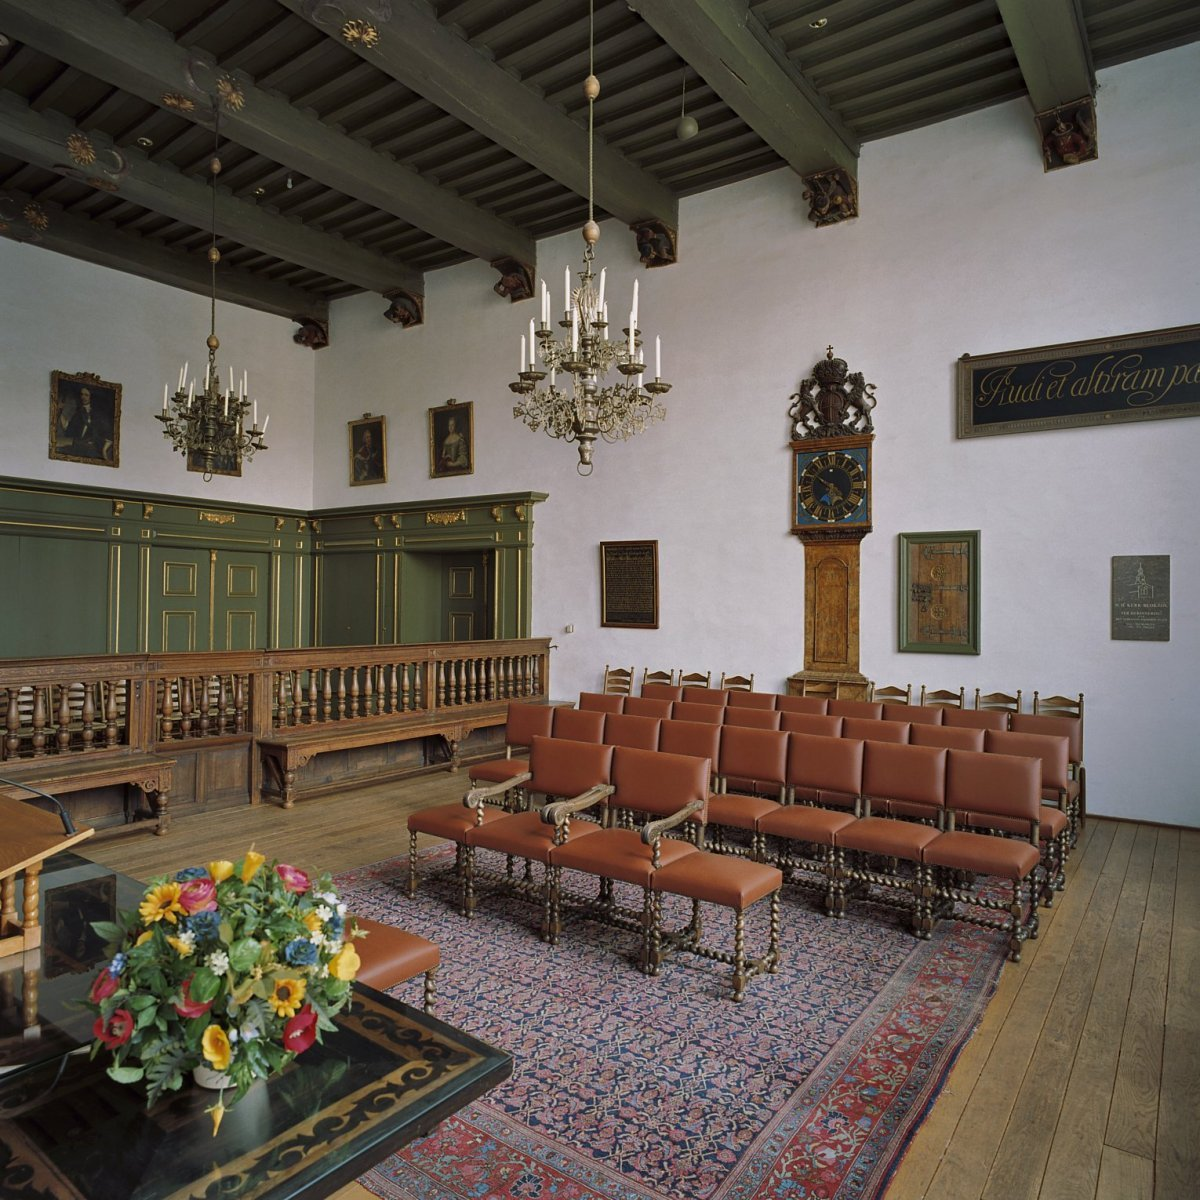 https://upload.wikimedia.org/wikipedia/commons/d/dd/Interieur%2C_overzicht_Schepenzaal_-_Zwolle_-_20364858_-_RCE.jpg